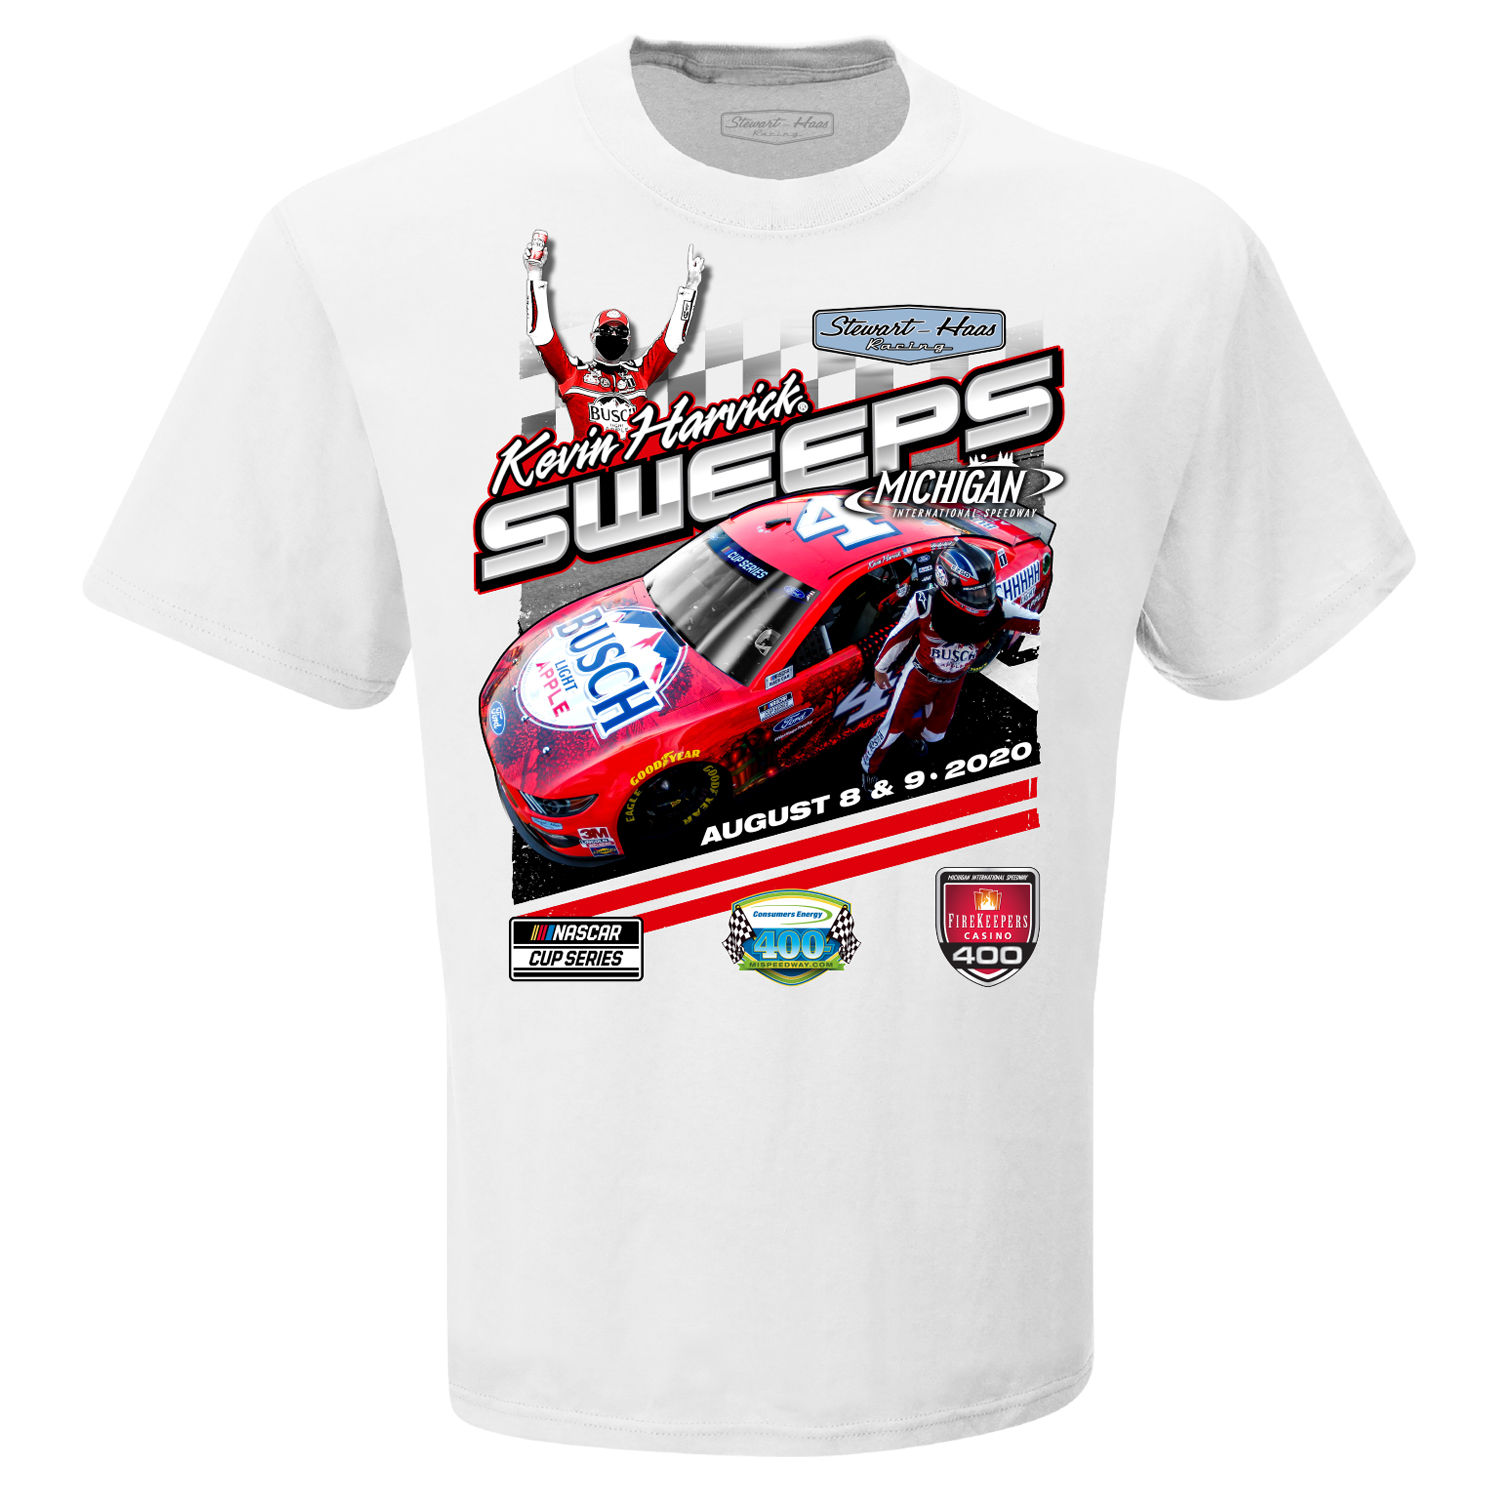 Kevin Harvick 2020 Busch Light Apple Stewart-Haas Racing Michigan Sweeps Win Tee